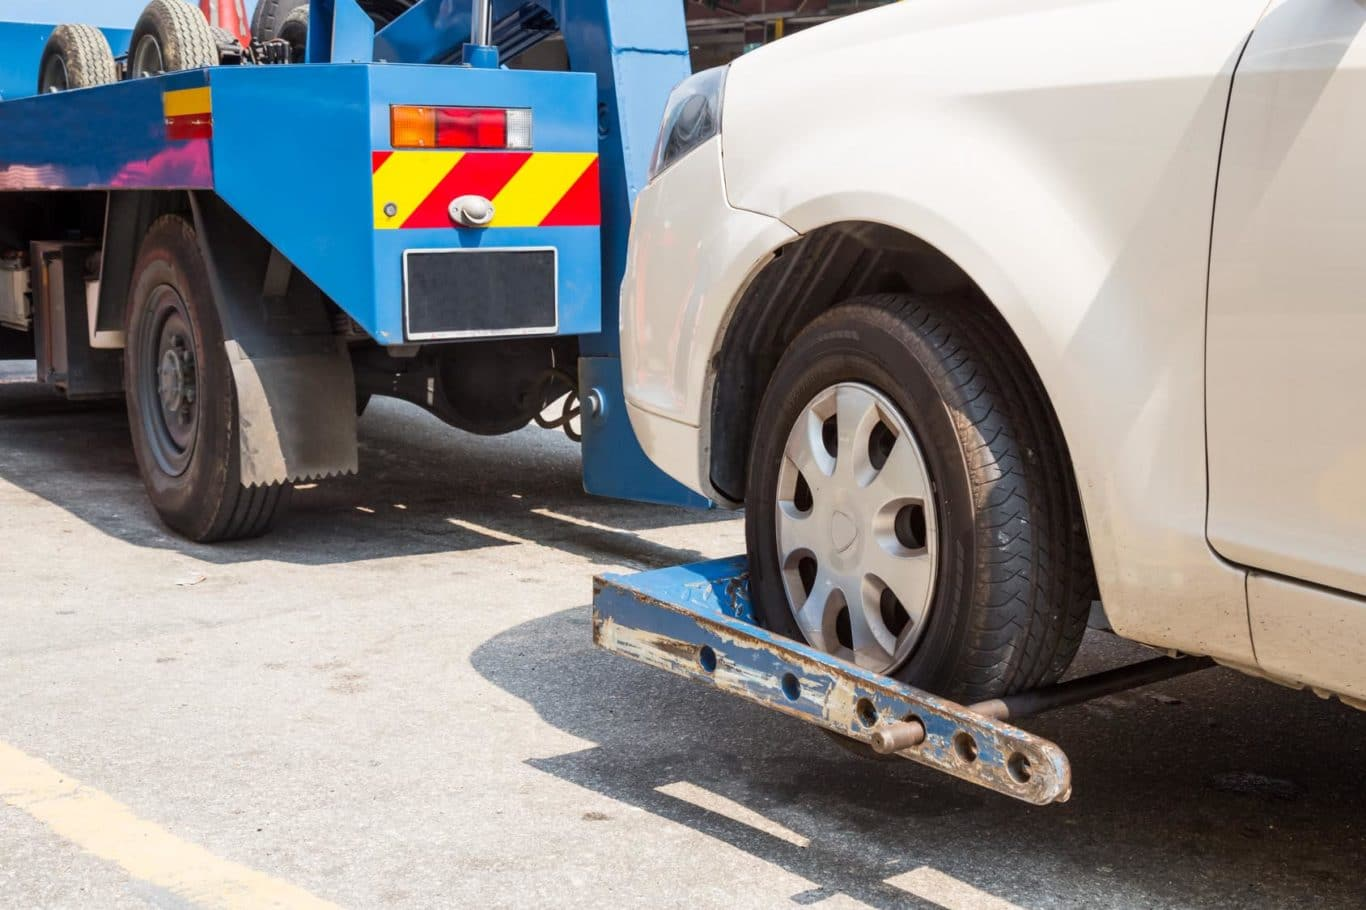 Kimmage expert Car Towing services